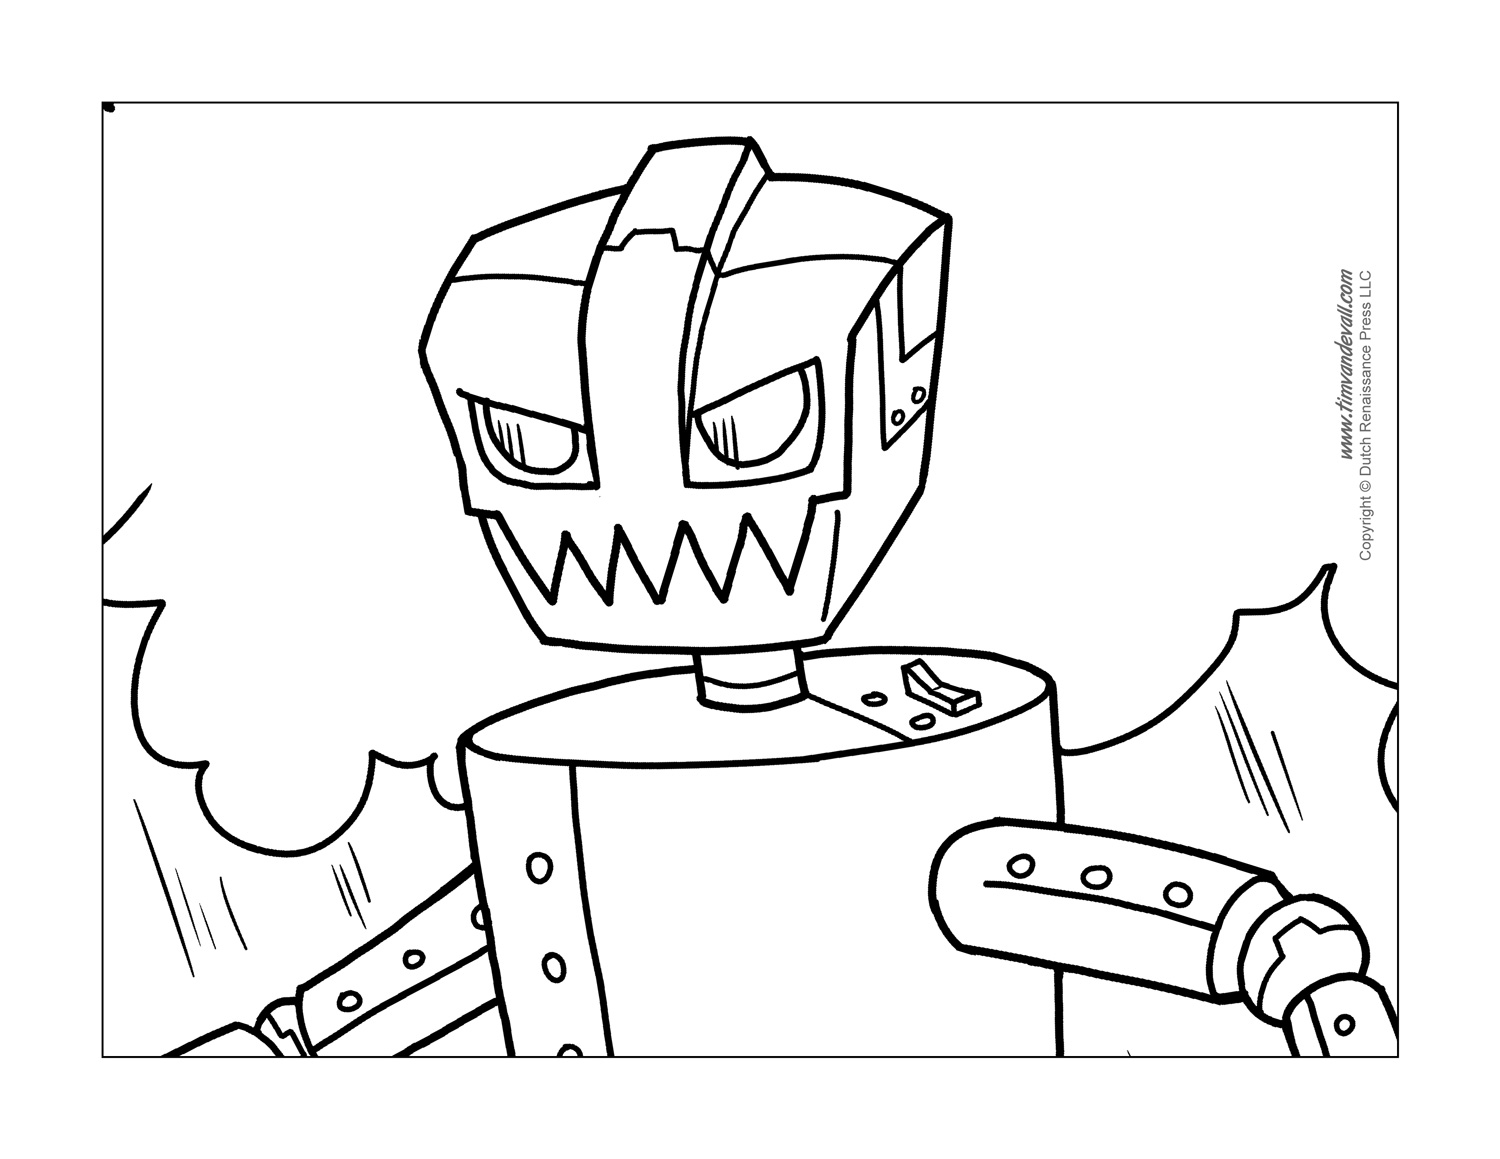 robot pictures to print free robot coloring page robot pictures to print